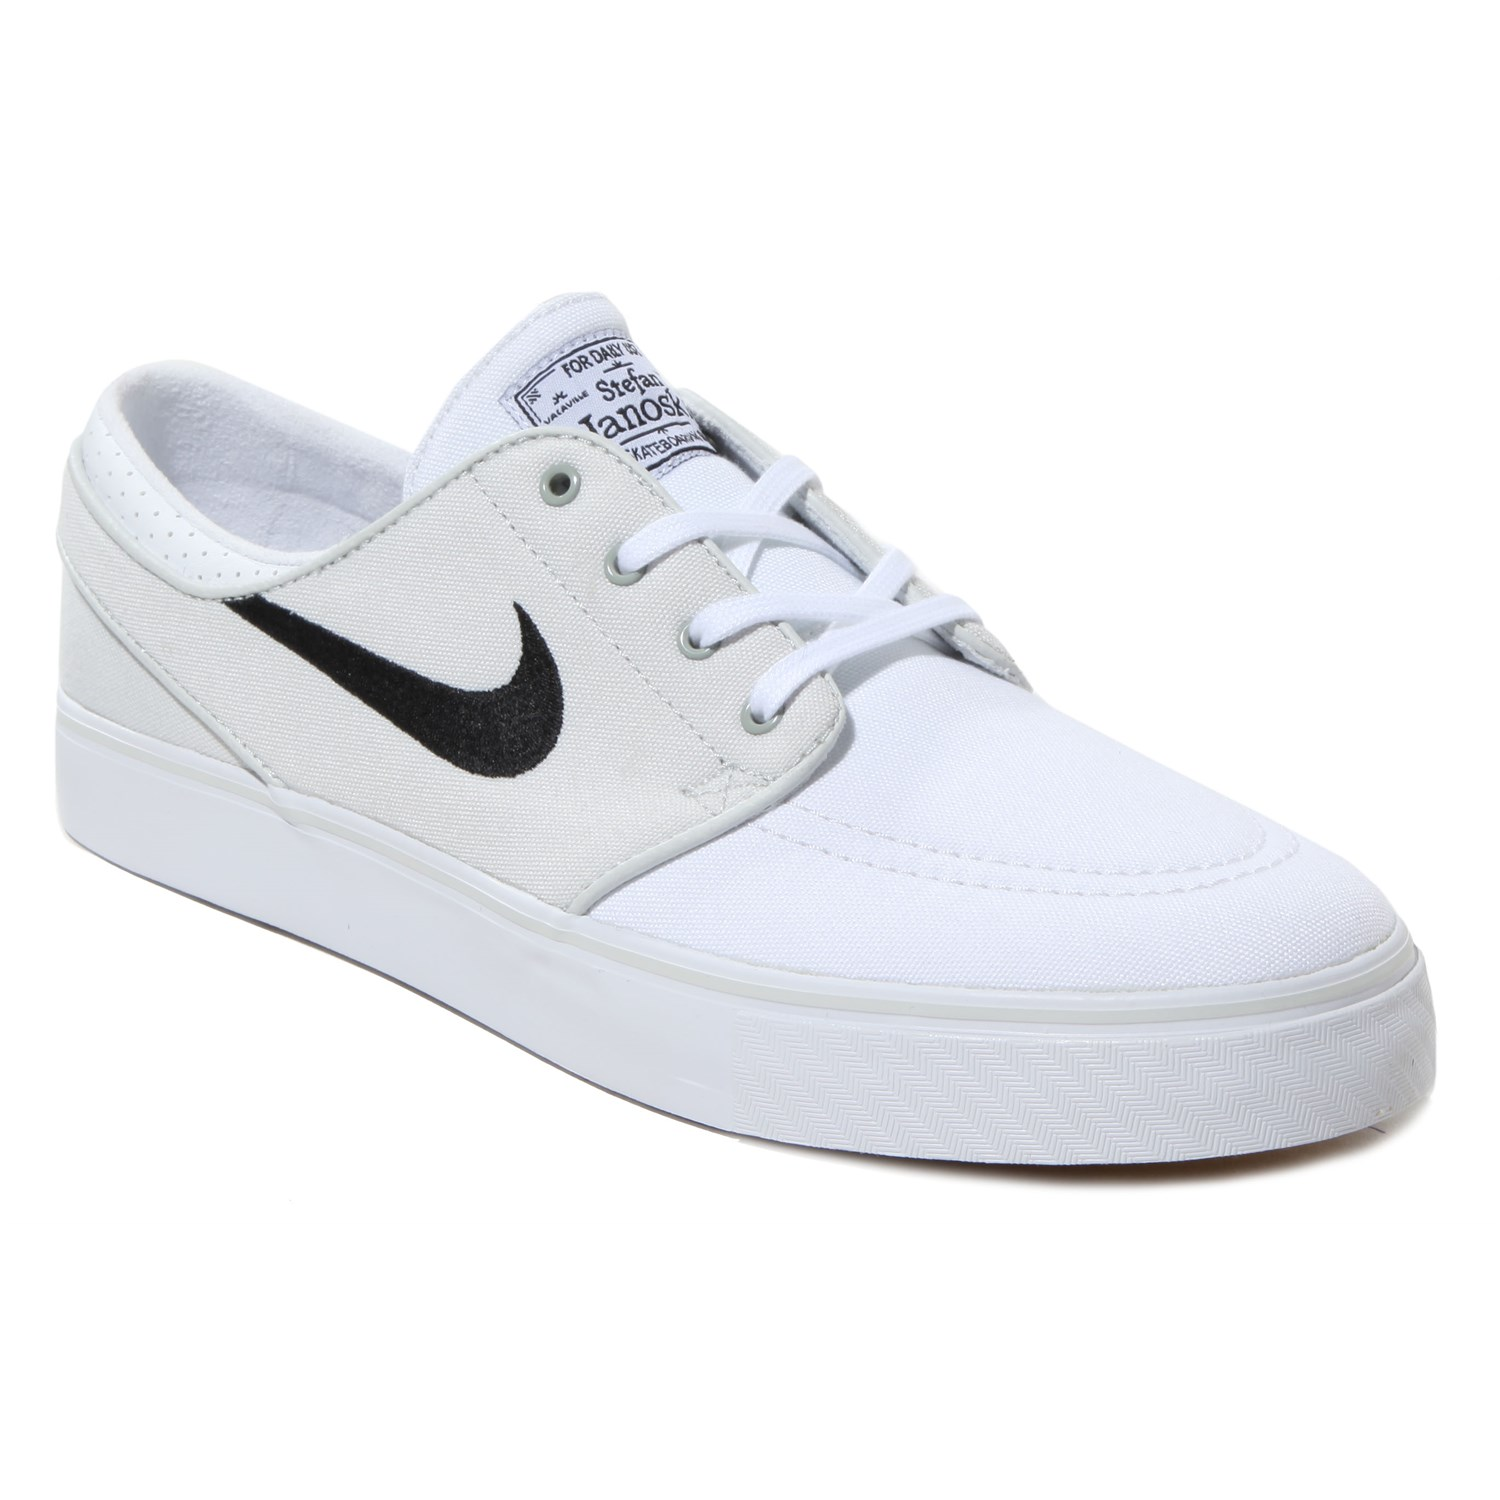 Perfect Janoski Nike For Girls  Wwwimgarcadecom  Online Image Arcade